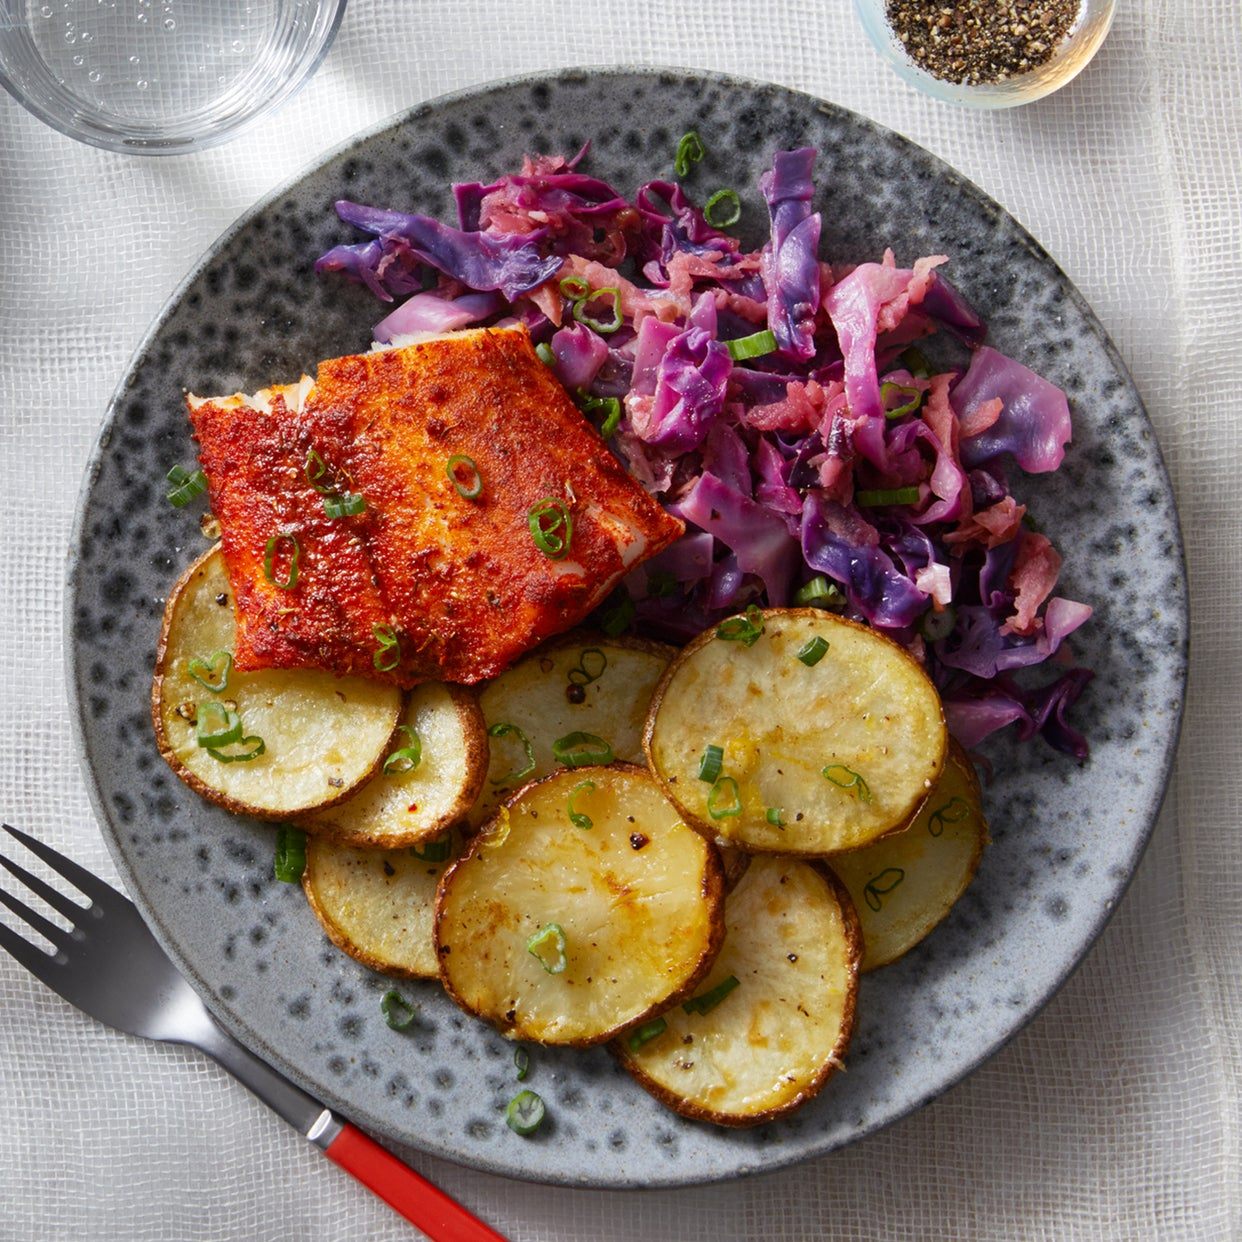 Baked Cajun Cod with Braised Cabbage & Lemon-Garlic Potatoes